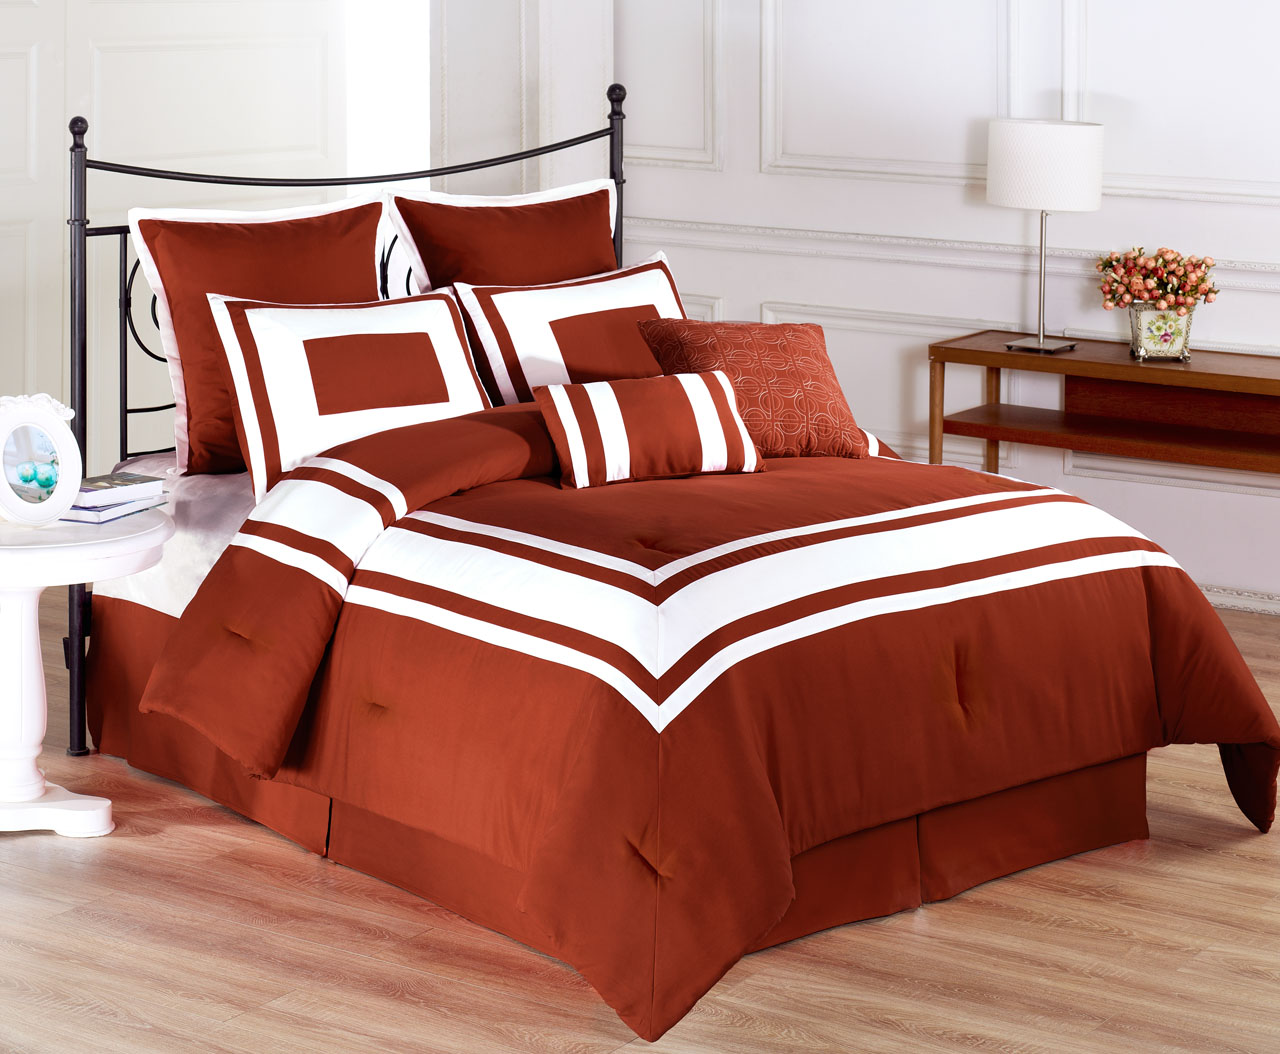 12 piece lux dcor burnt orange bed in a bag set - Burnt orange bedroom accessories ...